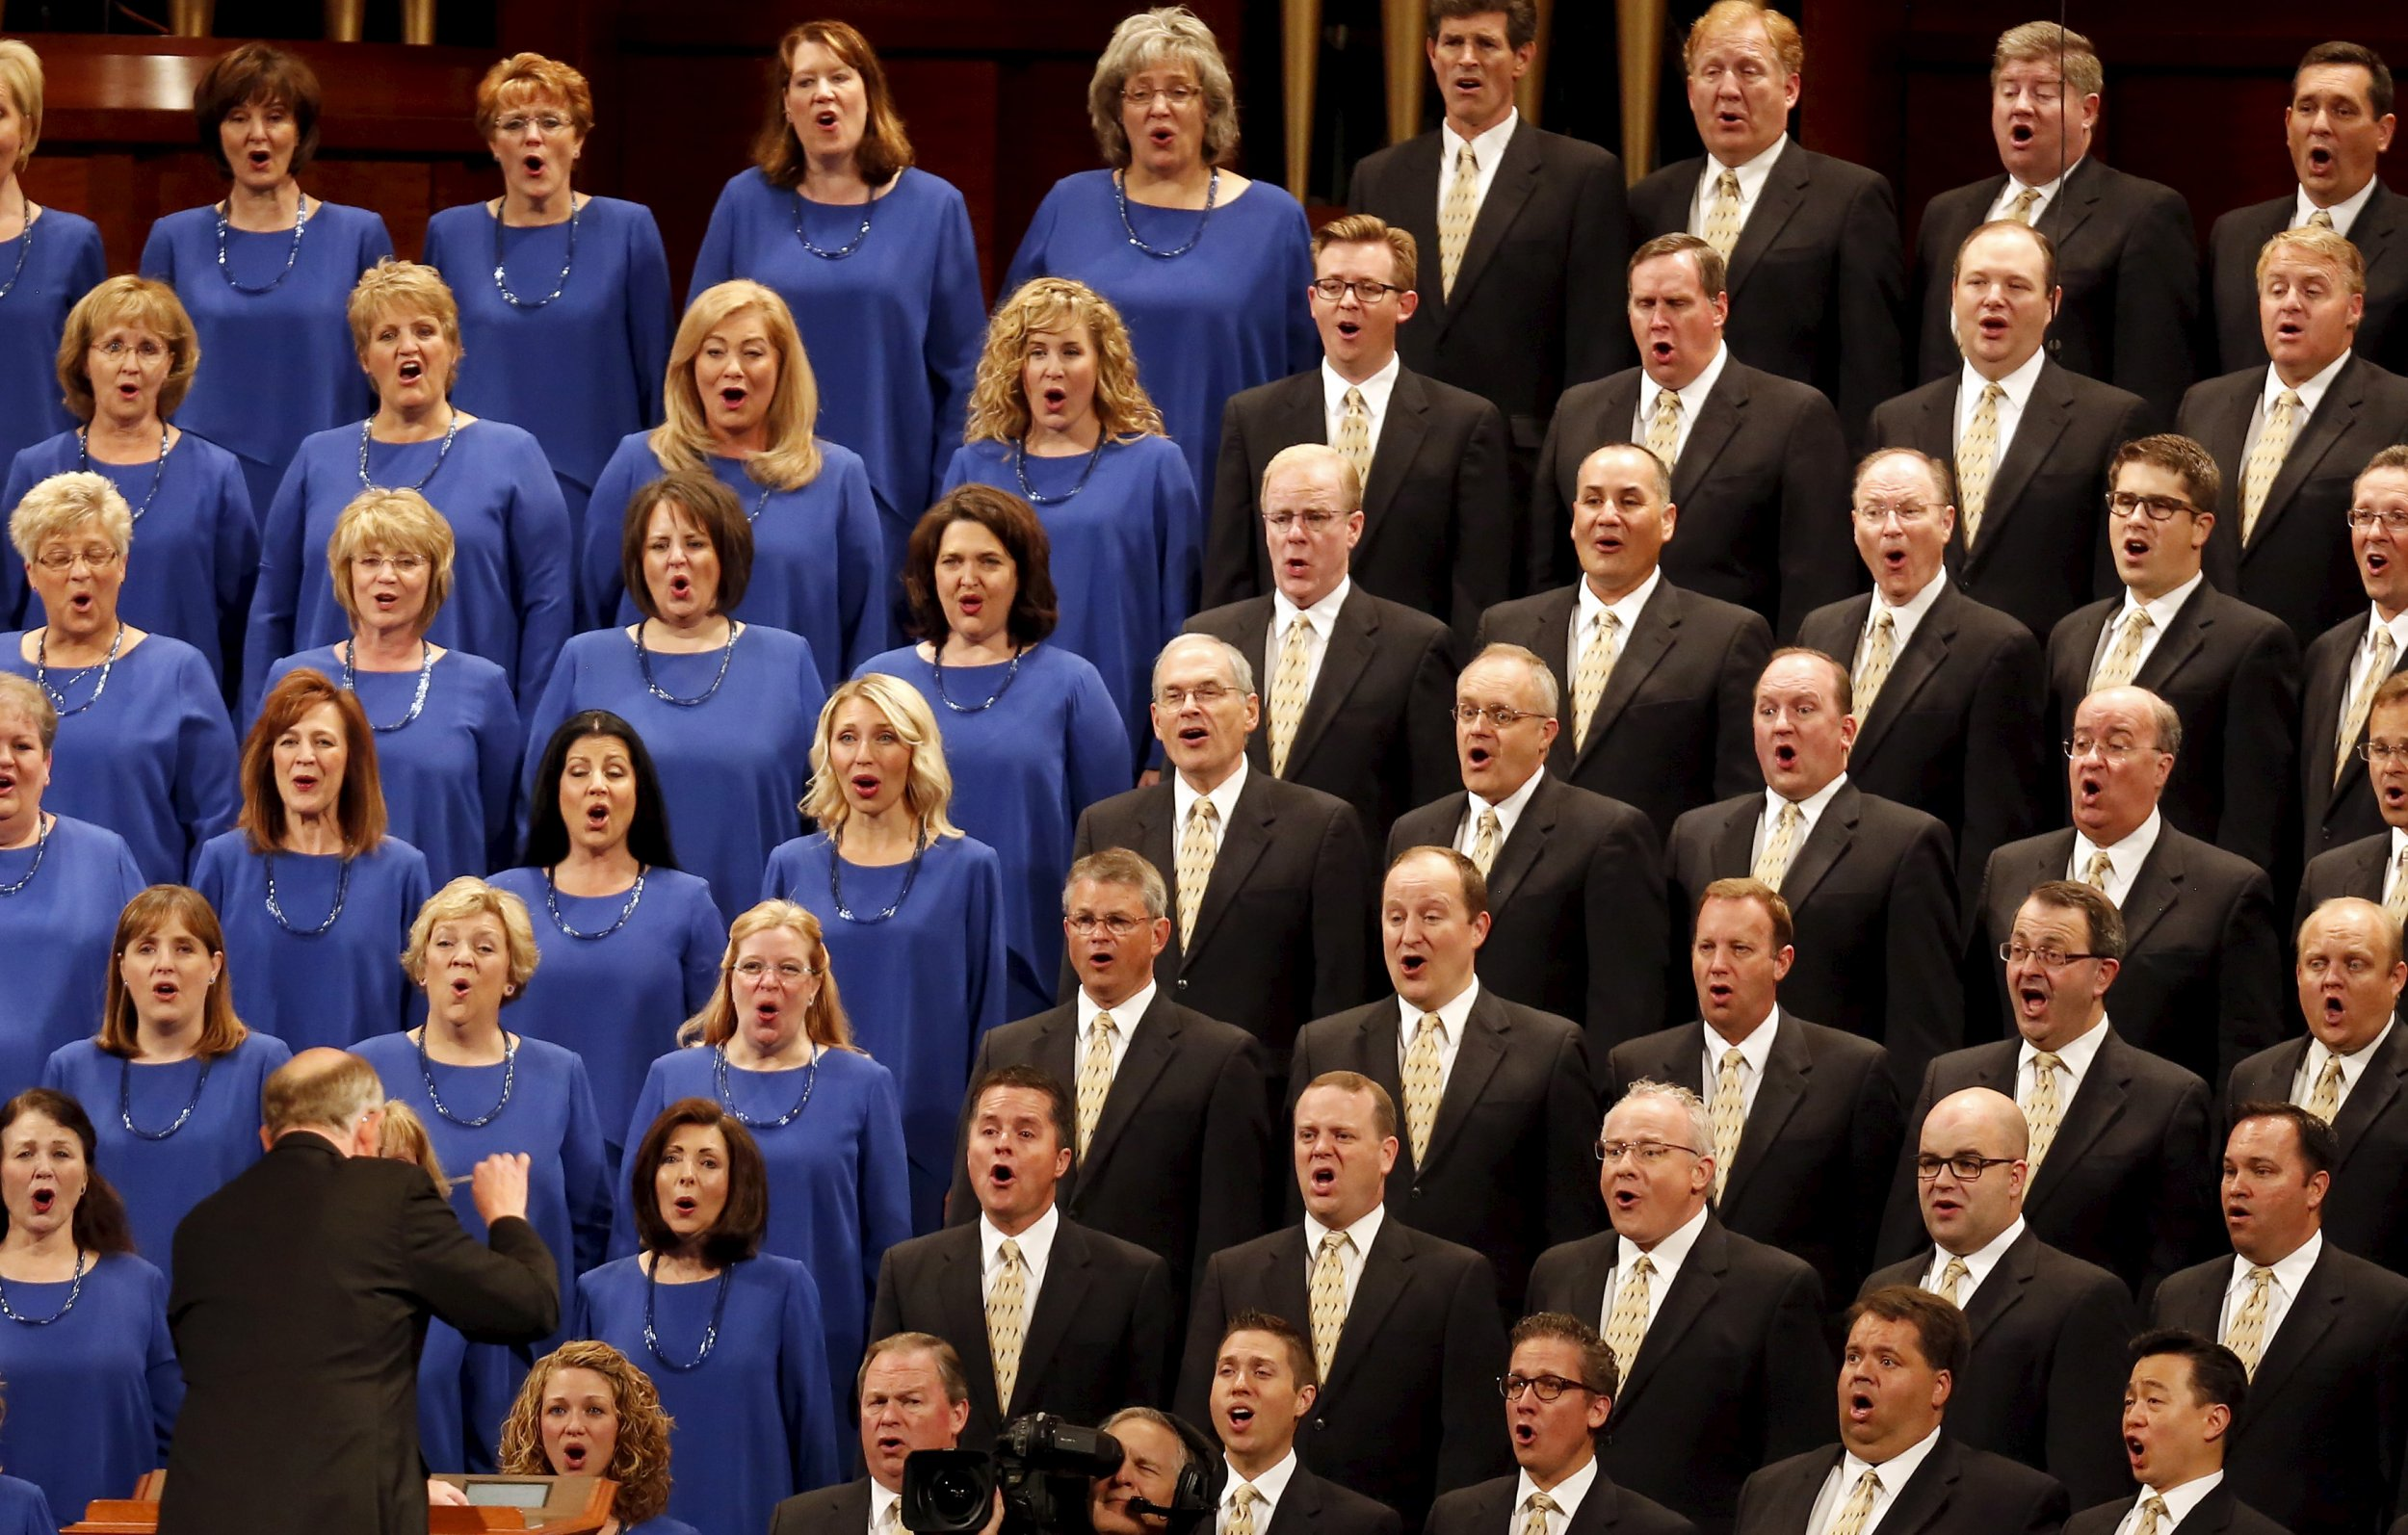 12-22-16 Mormon Tabernacle Choir